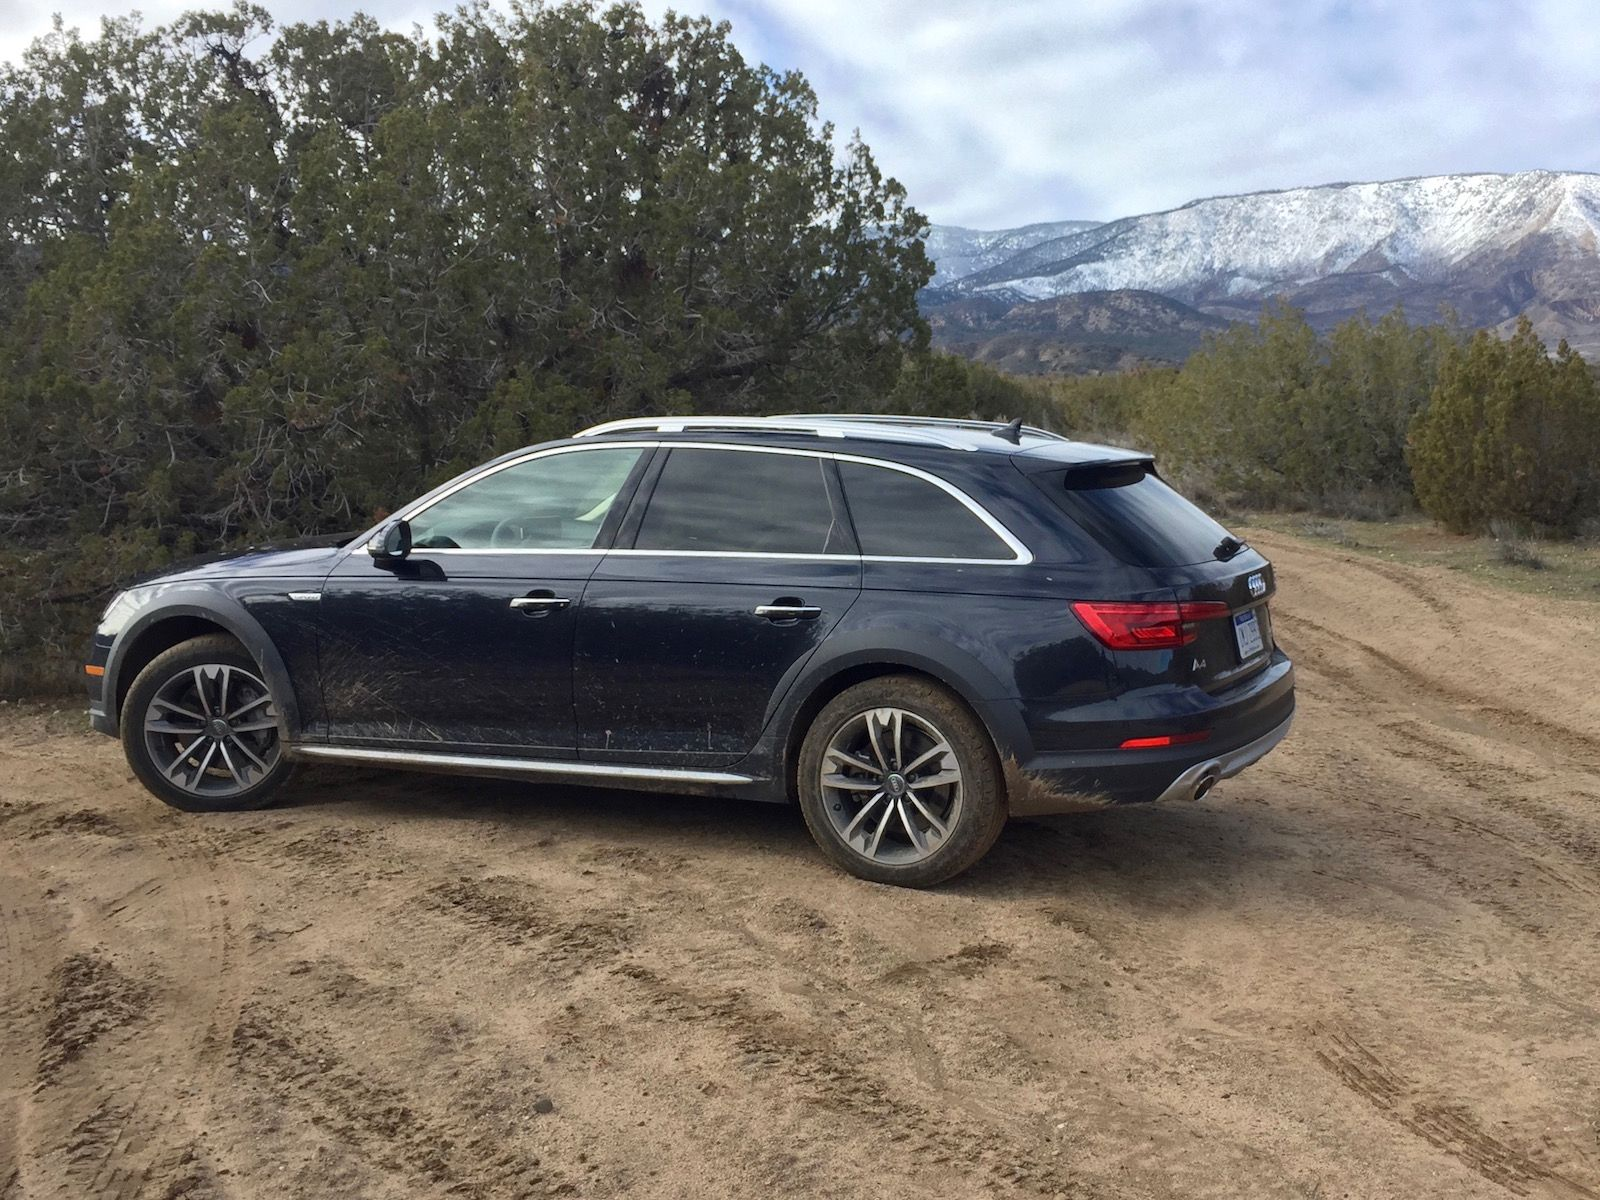 What Would You Like To Know About The 2017 Audi A4 Allroad?